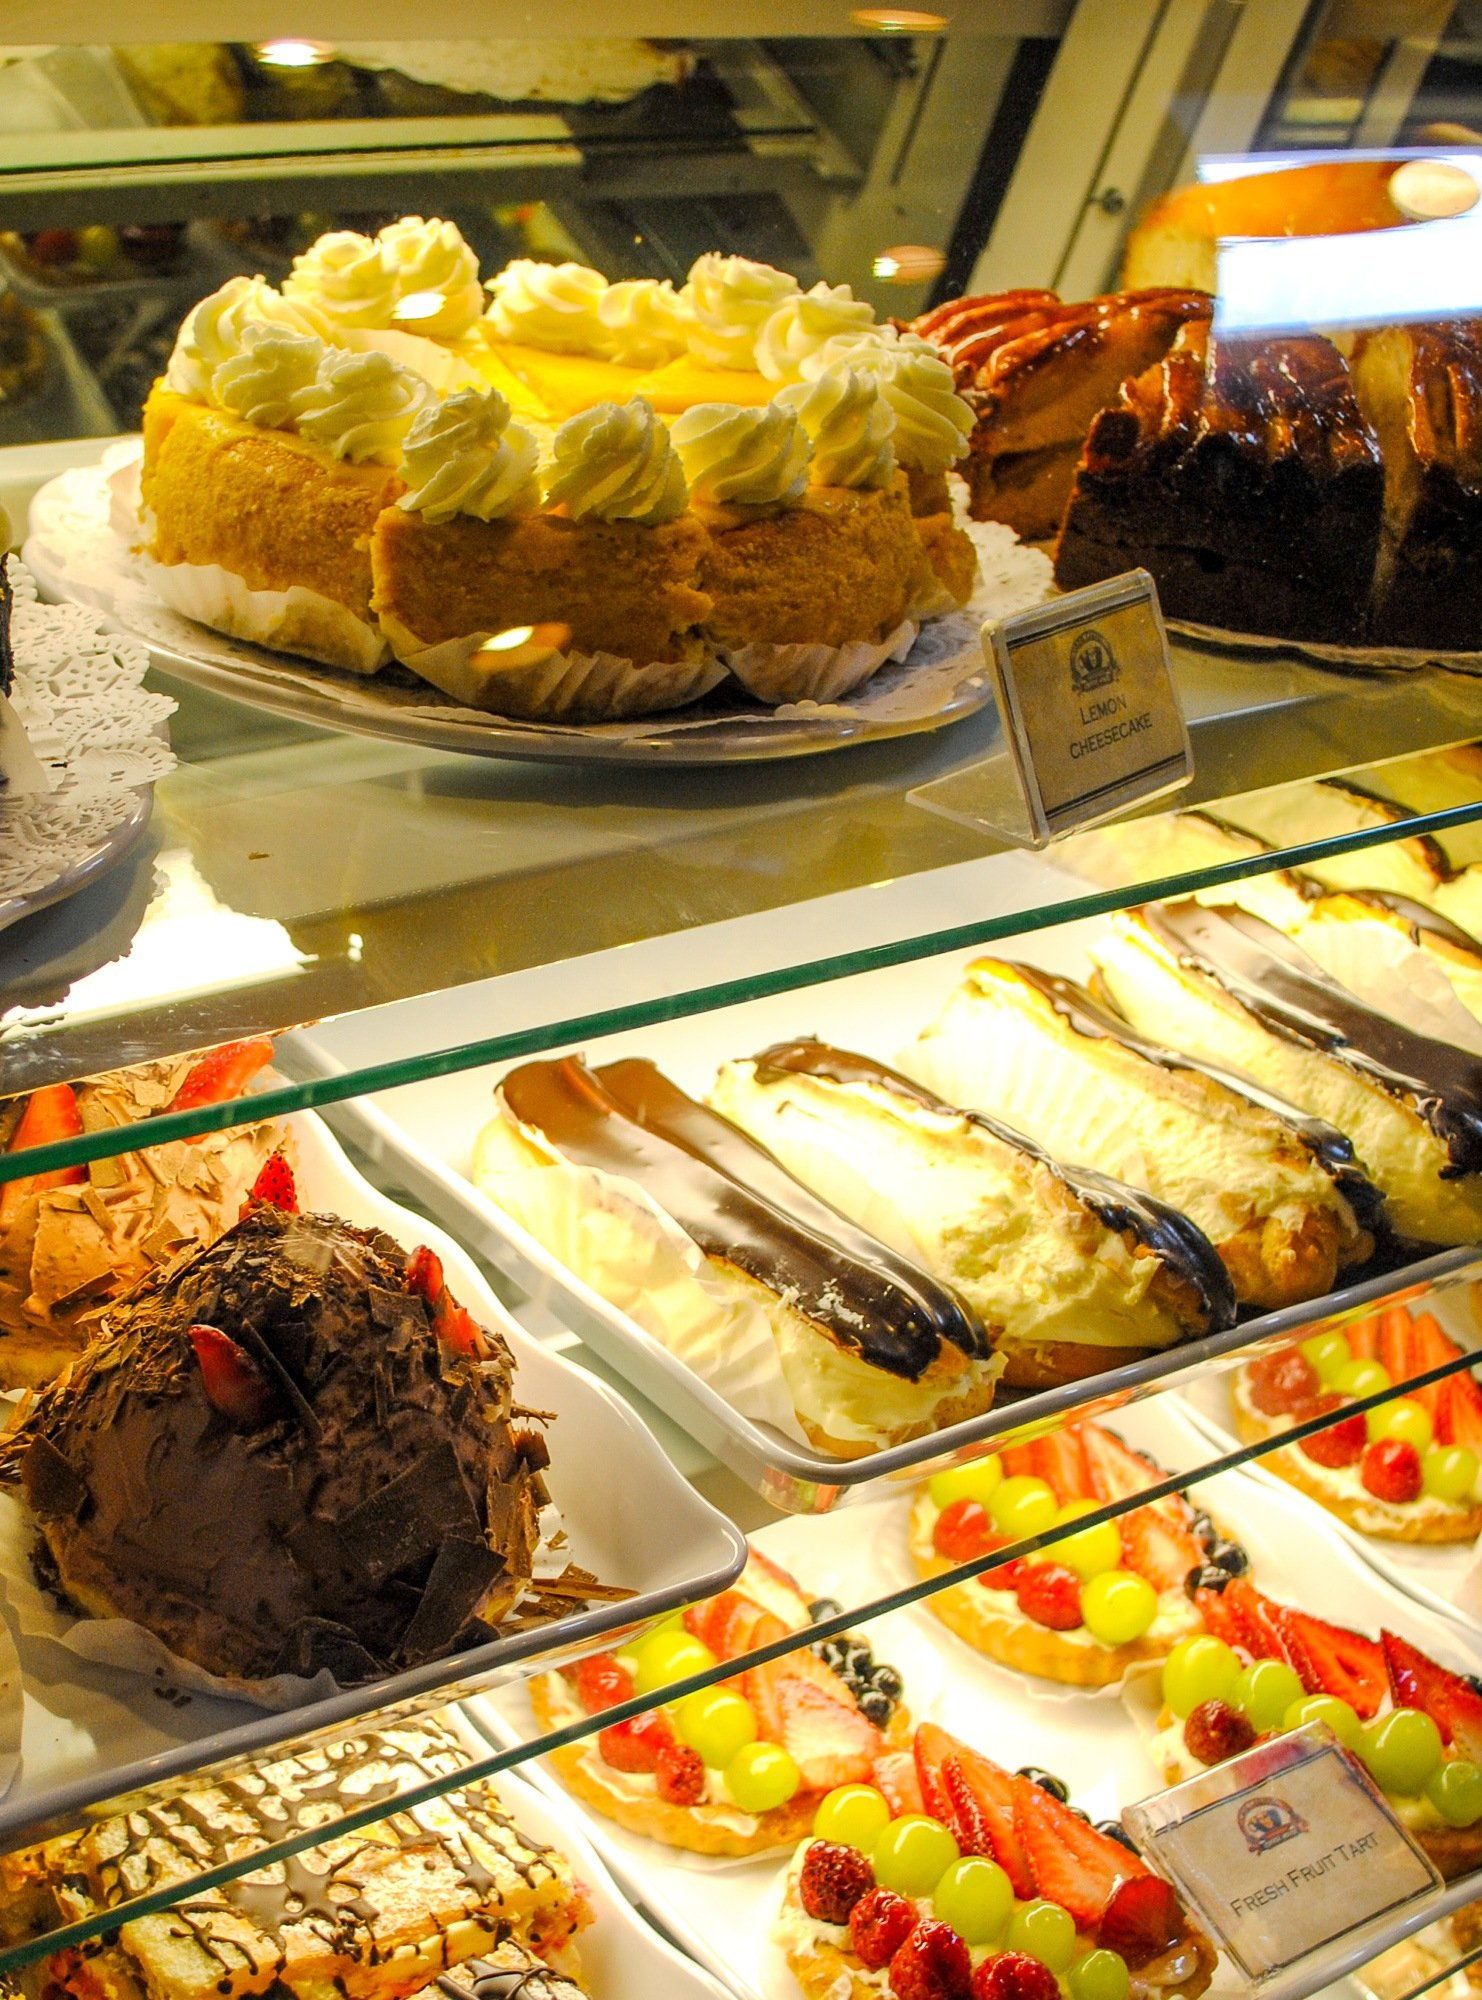 Sweets for sale from Café Carmel Coffee House